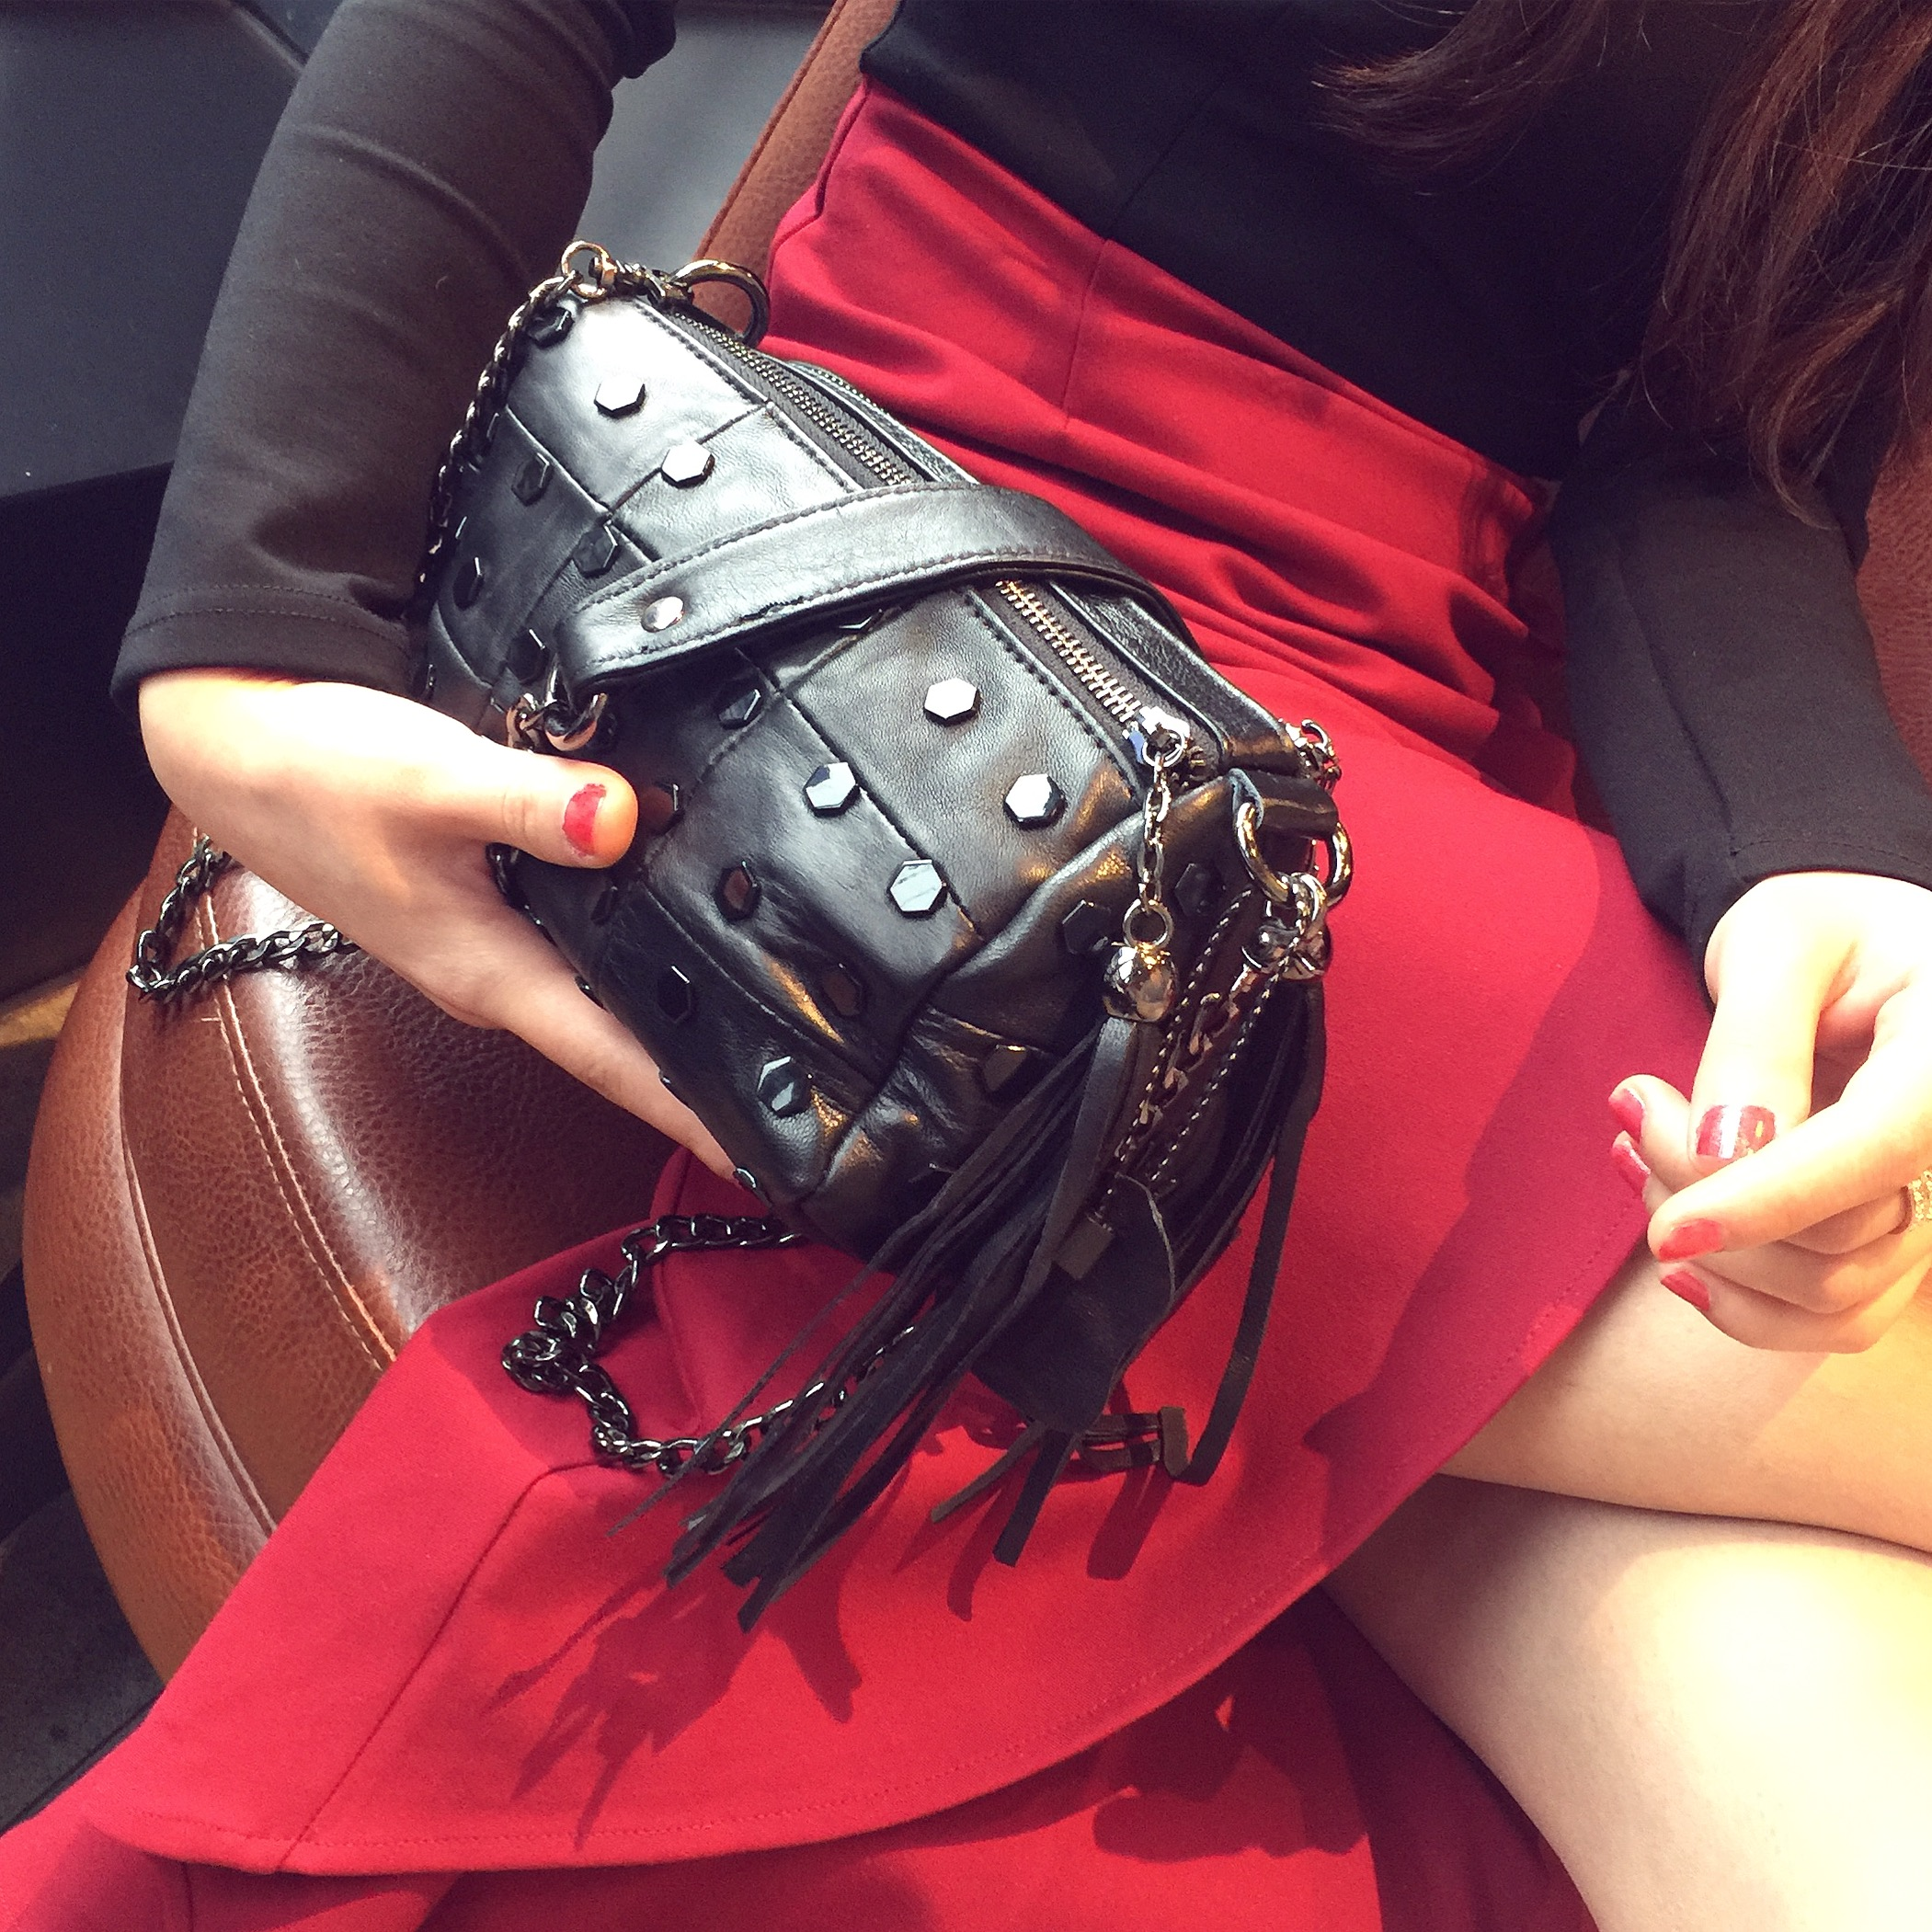 2018 new sheepskin leather fringed bag handbag shoulder bag bag bag Mini chain rivet bag bag